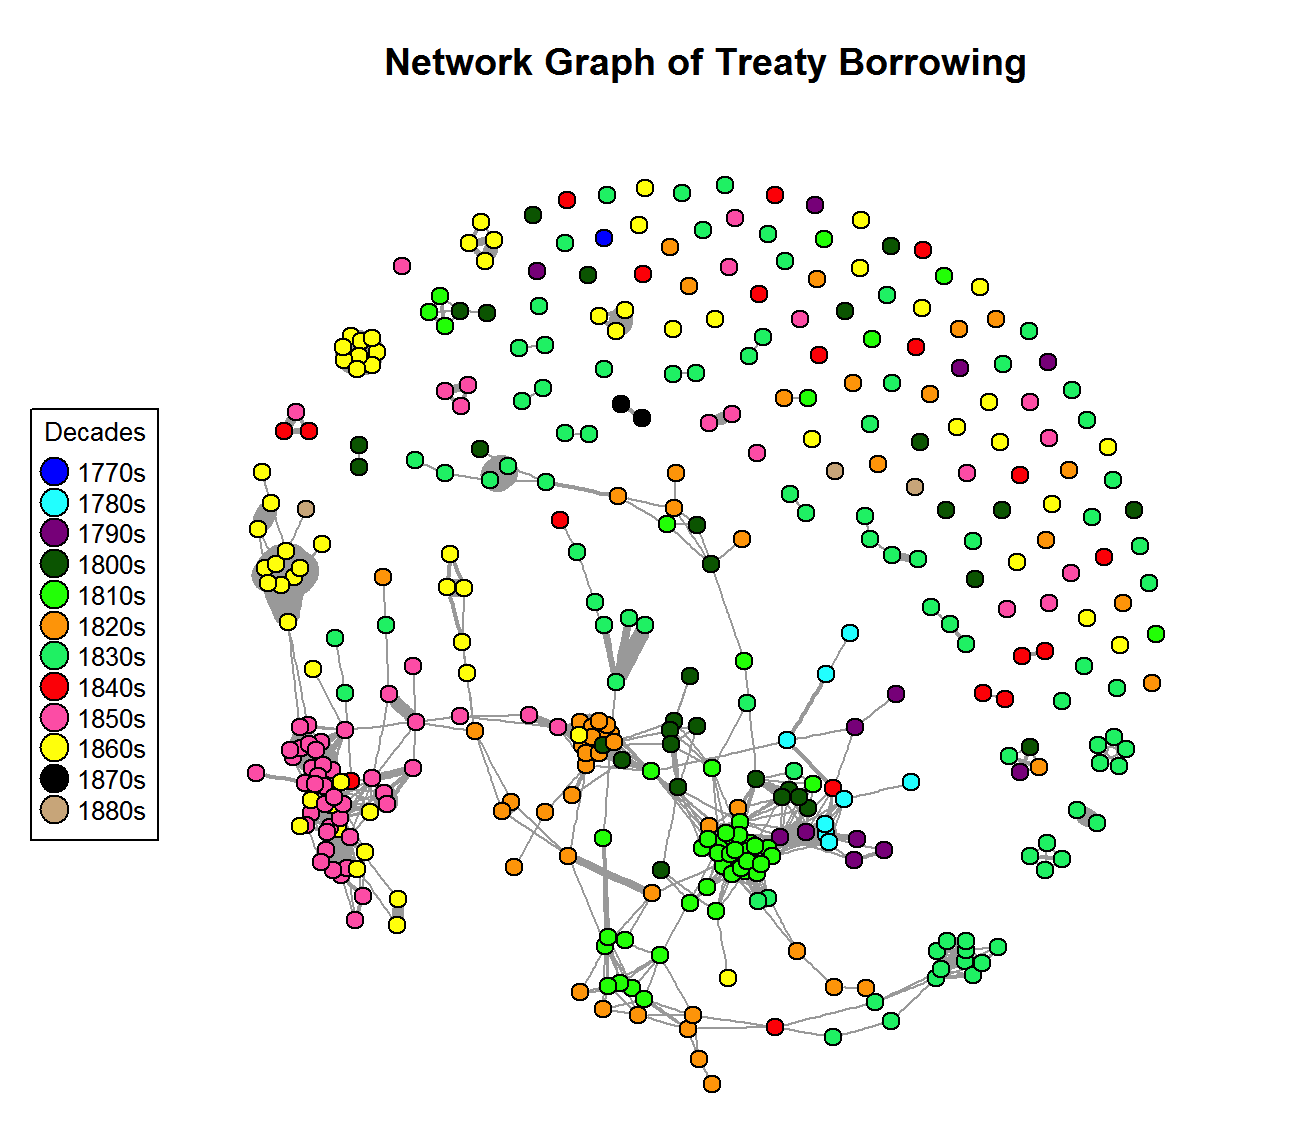 Network graph that shows the language borrowing that occurred between treaties over time